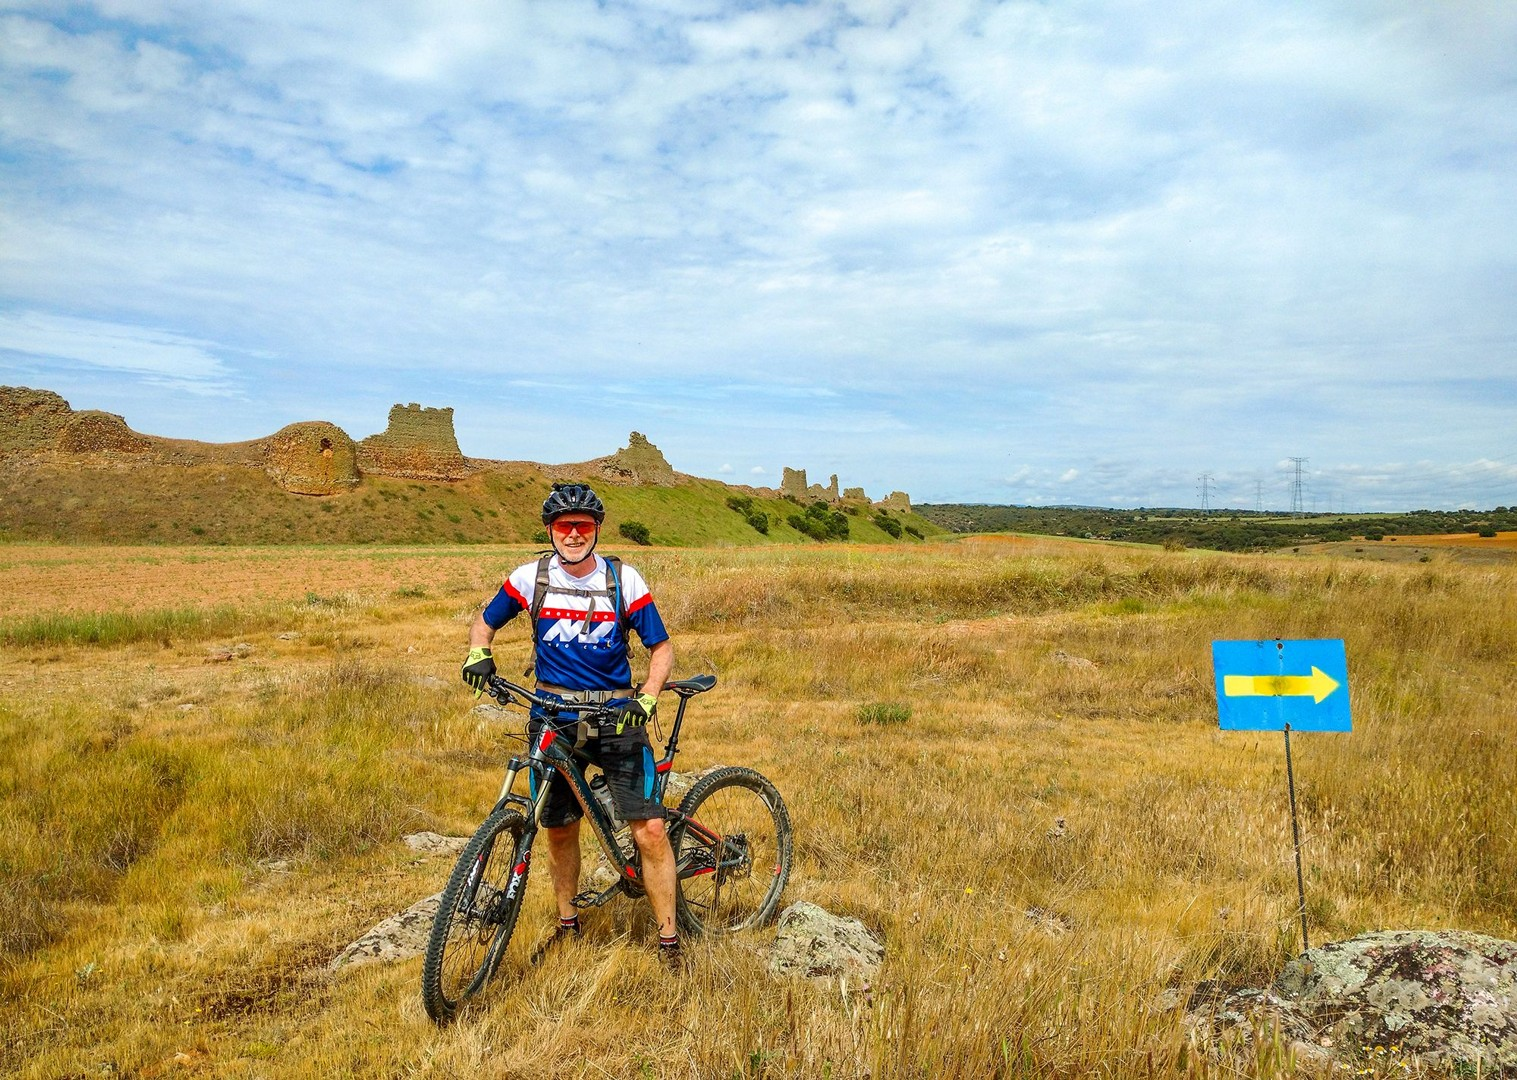 spain-mountain-bike-holiday-with-saddle-skedaddle-ruta-de-la-plata.jpg - Spain - Ruta de la Plata - Guided Mountain Bike Holiday - Mountain Biking